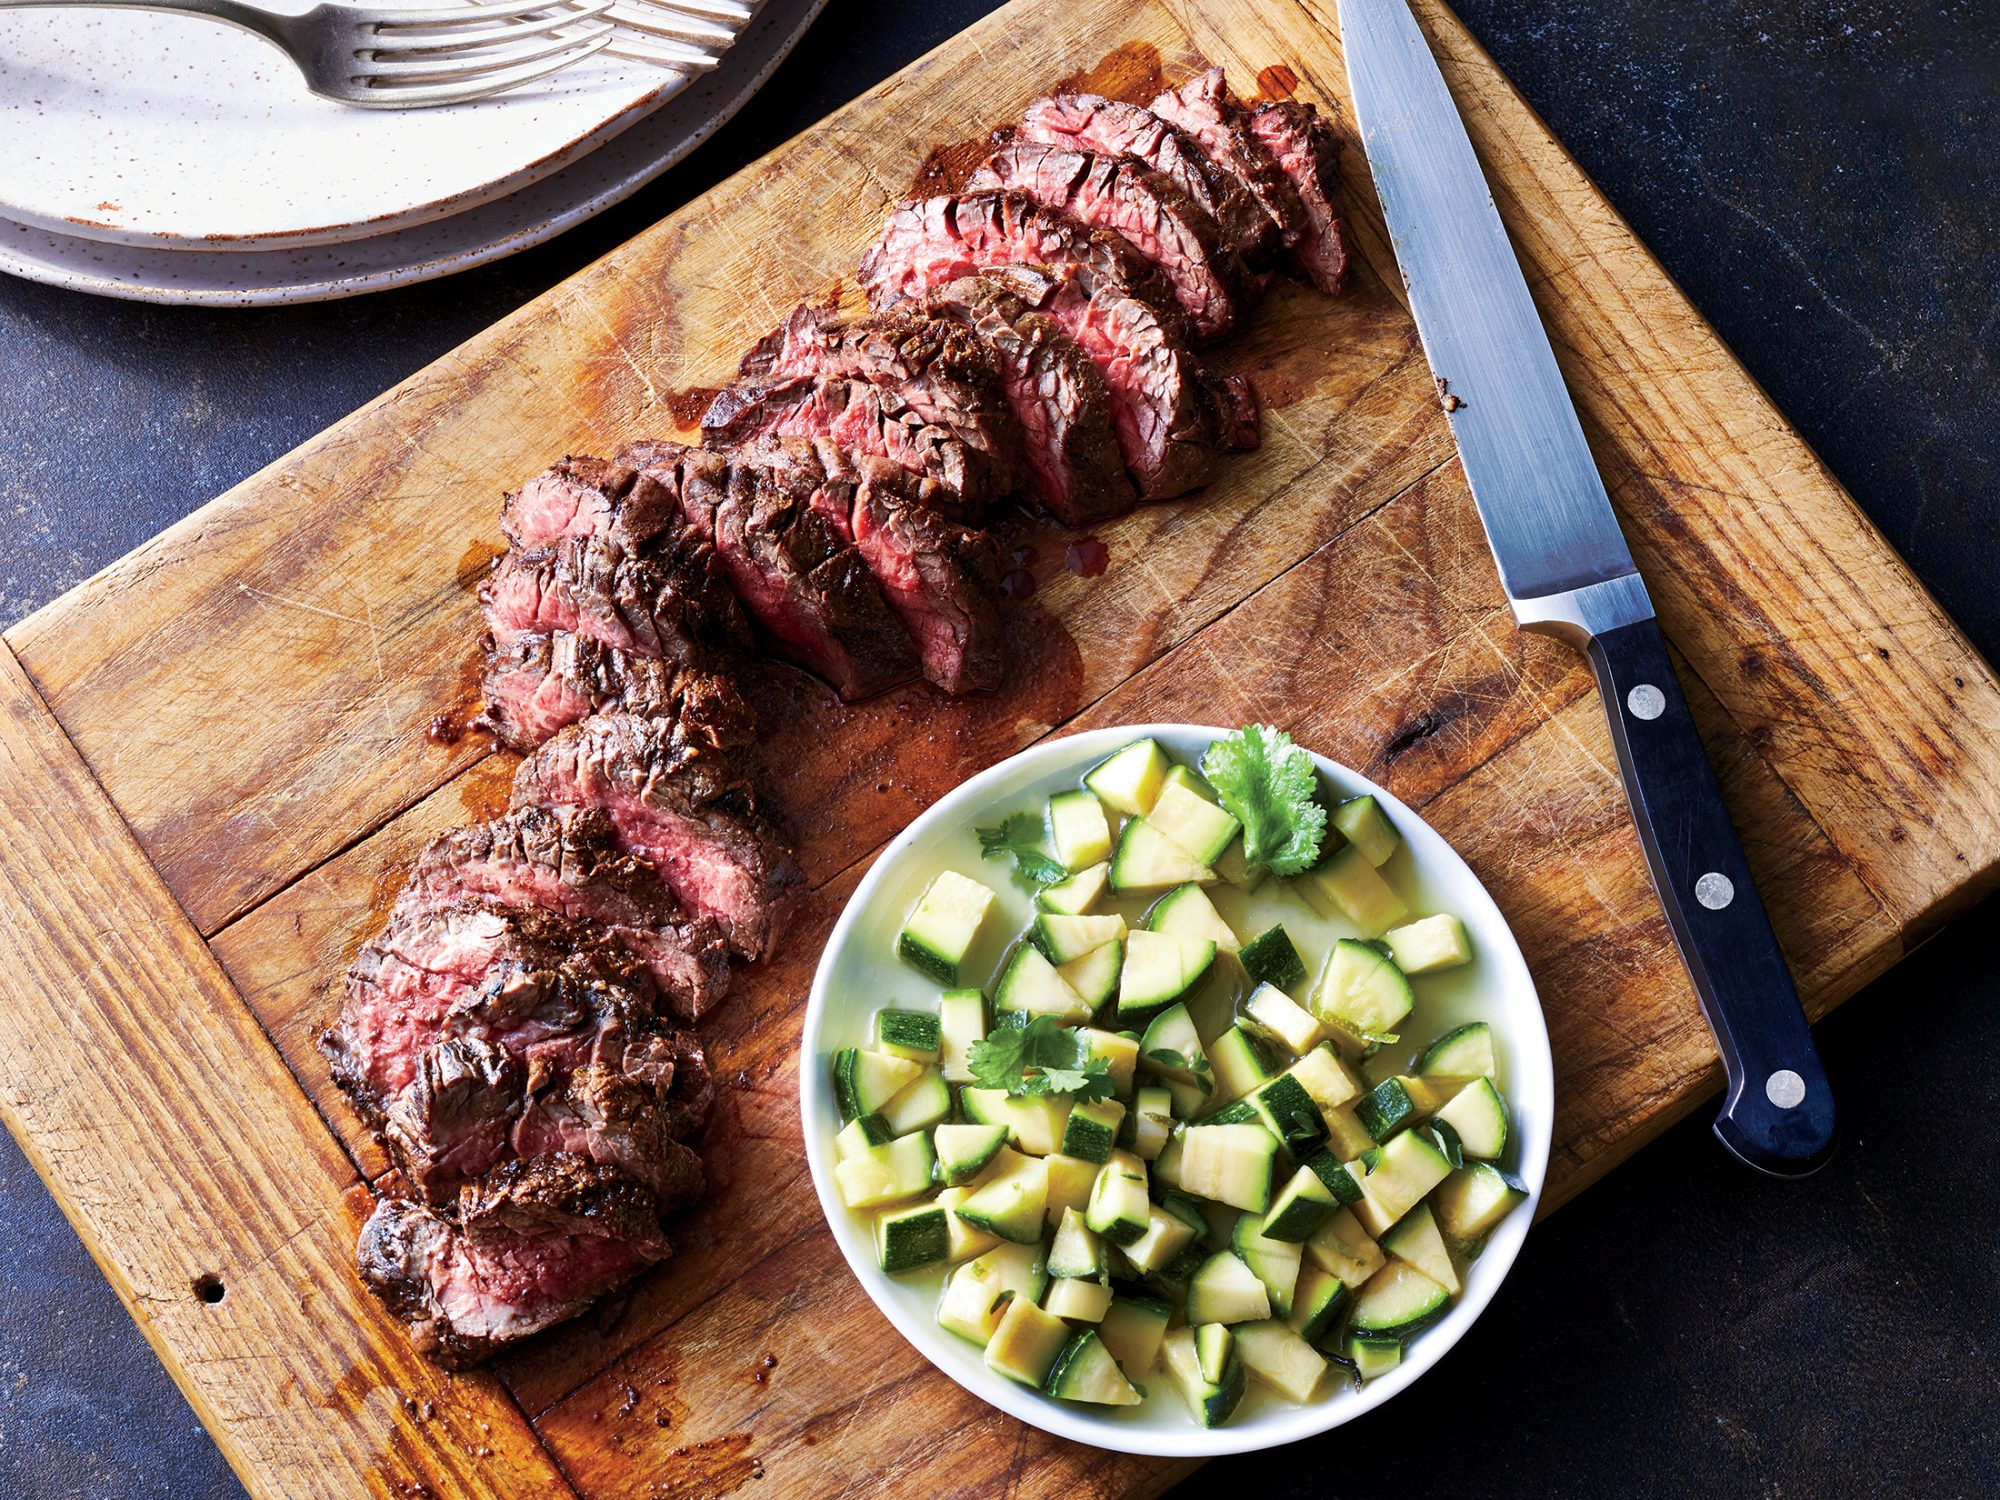 For Perfect Steak Every Time, Try a Reverse Sear